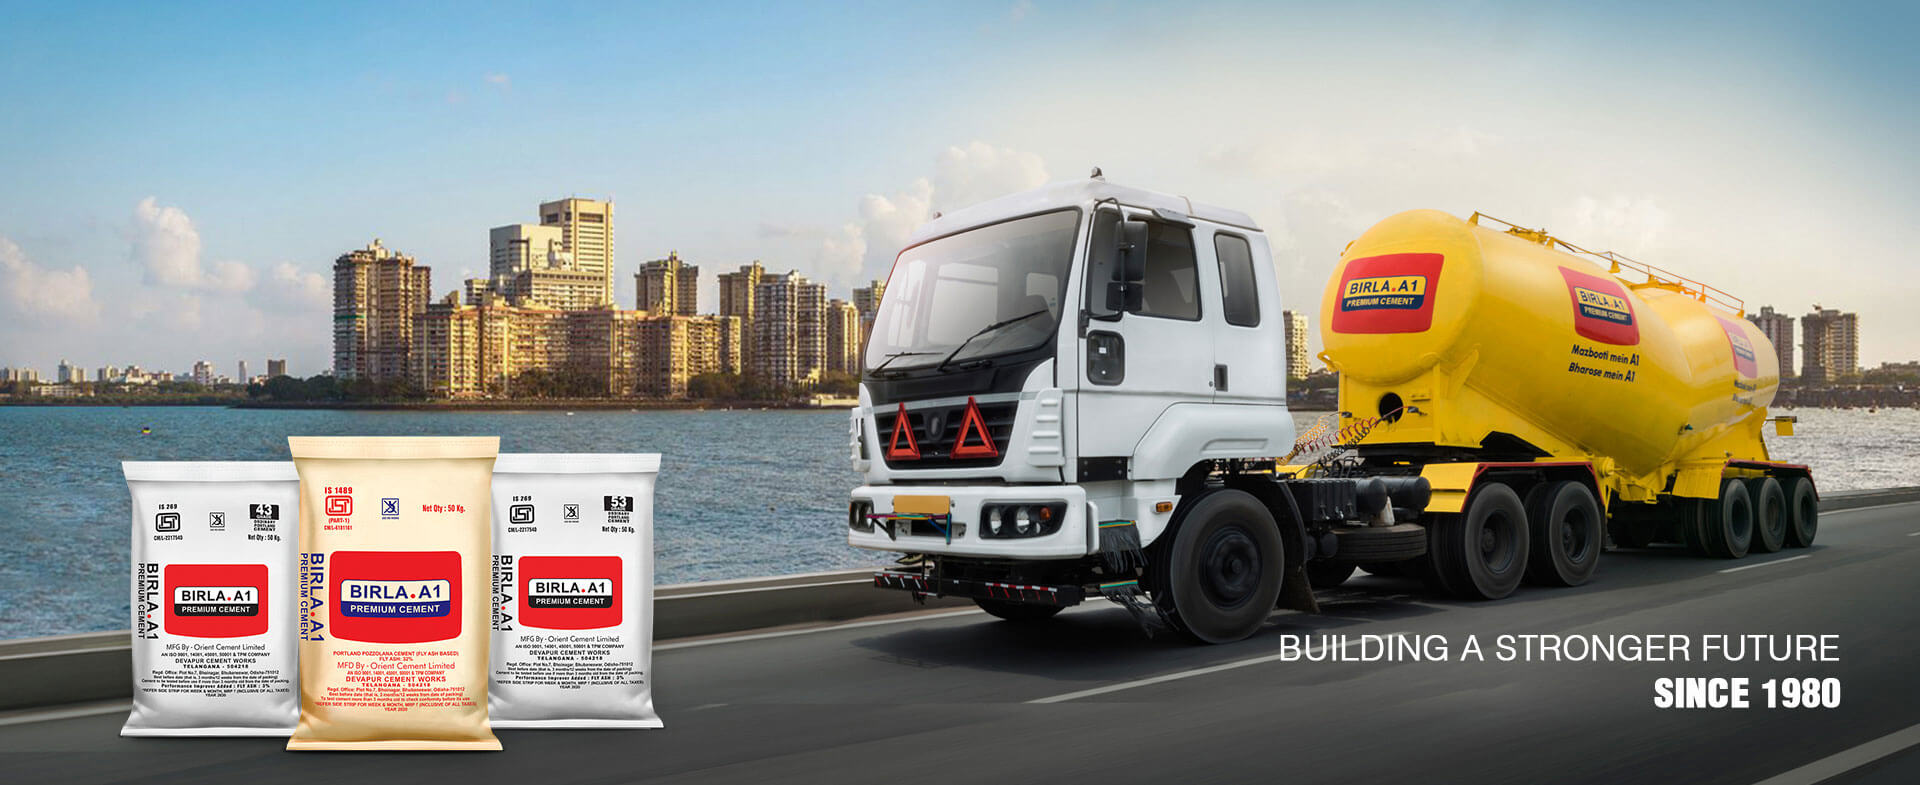 Cements | Top Cement Company in India | Best Quality Cement